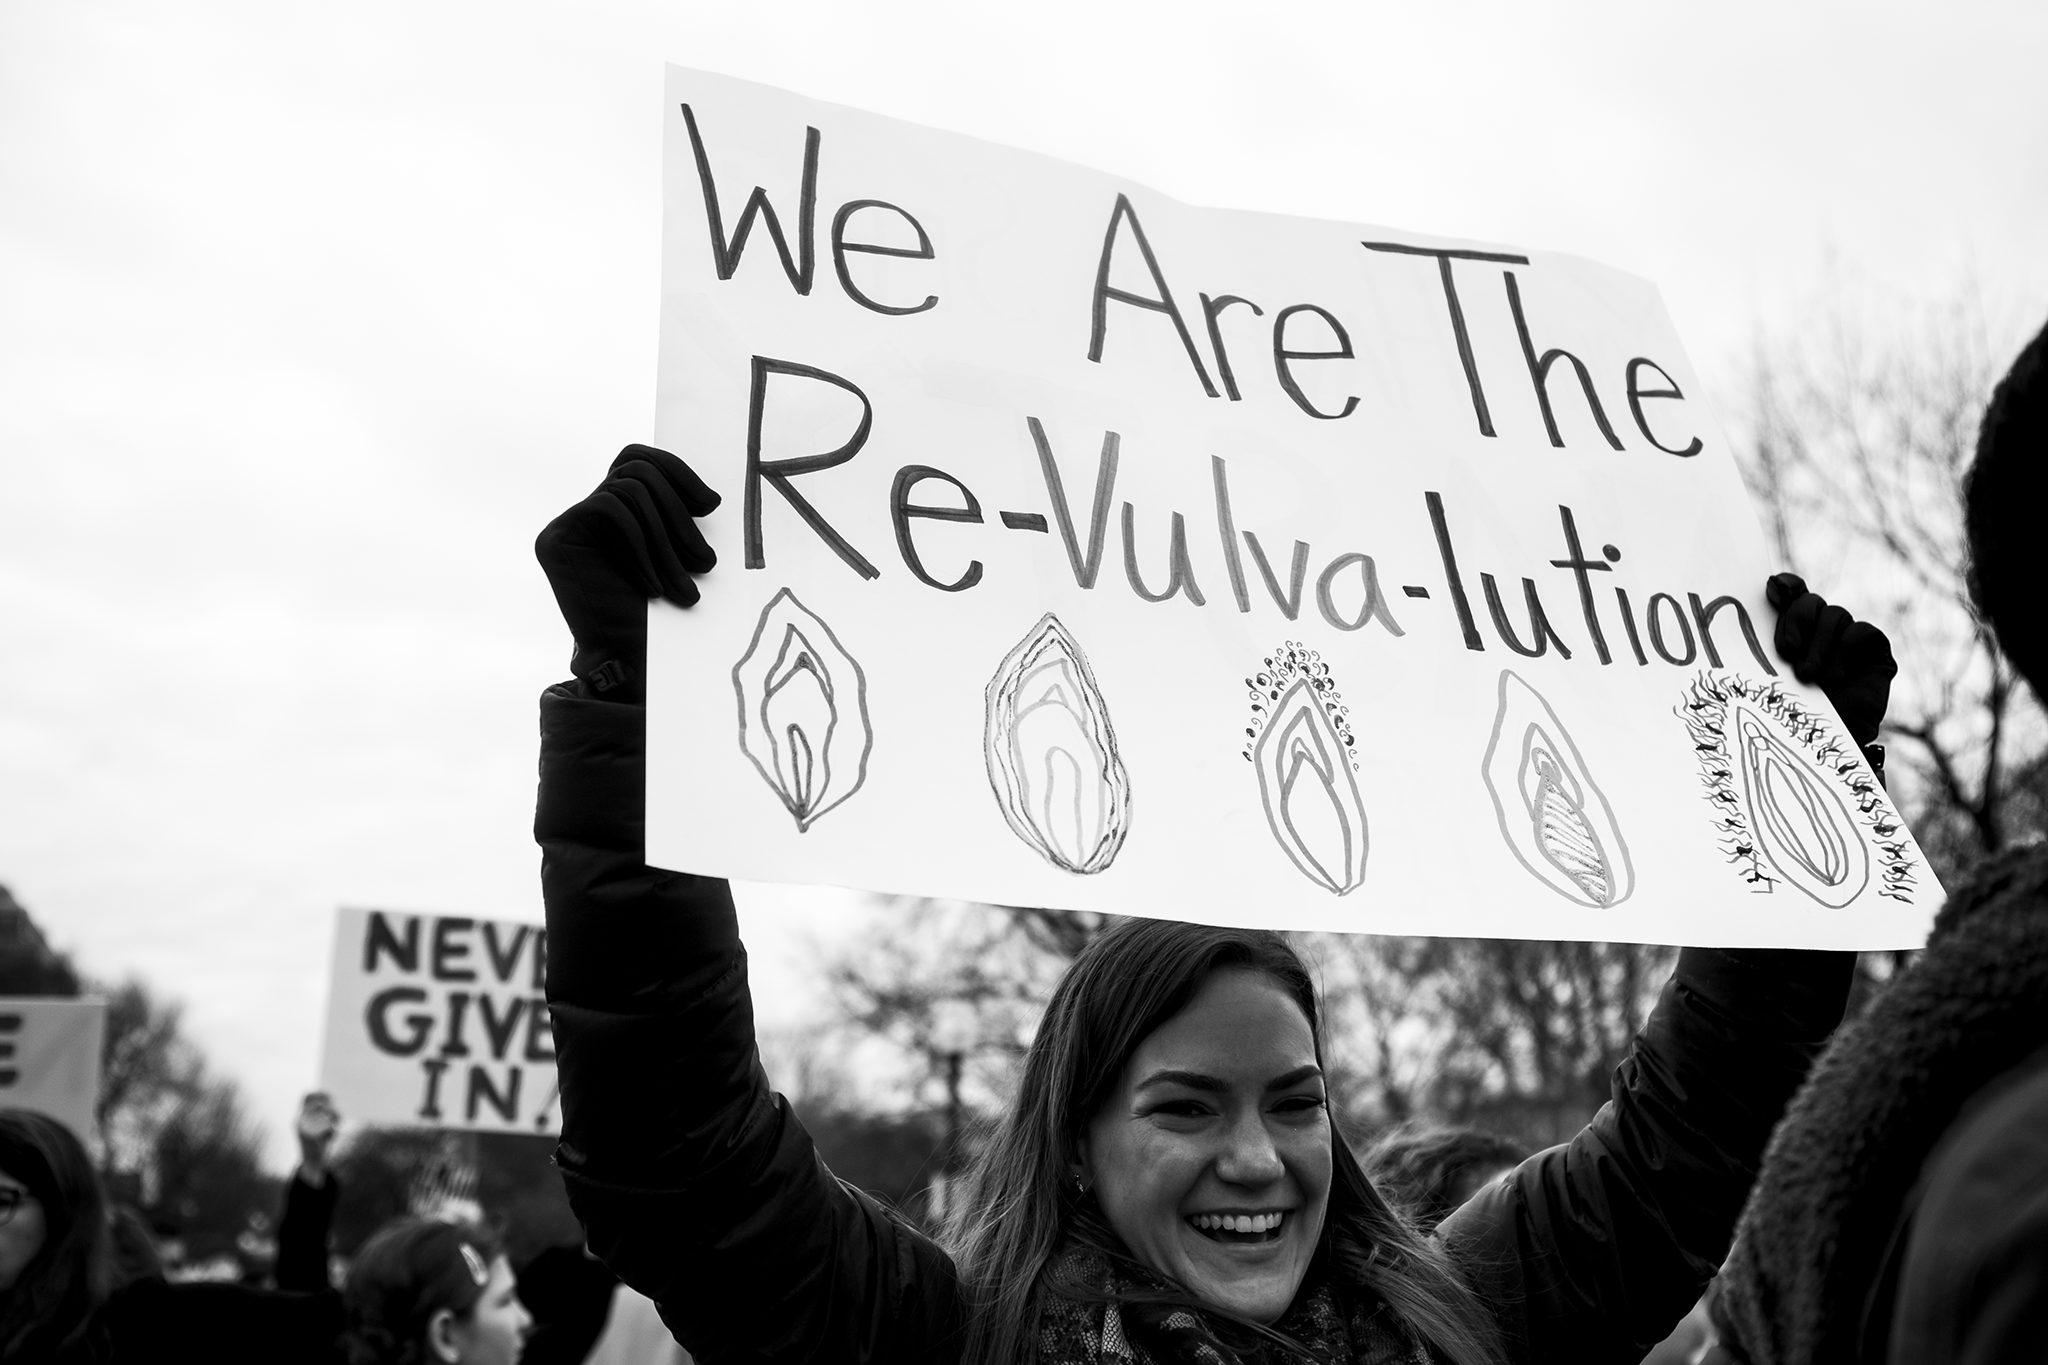 """Smiling woman holding protest sign """"we are the revulvalution"""" at the women's march on washington sister march in boston."""